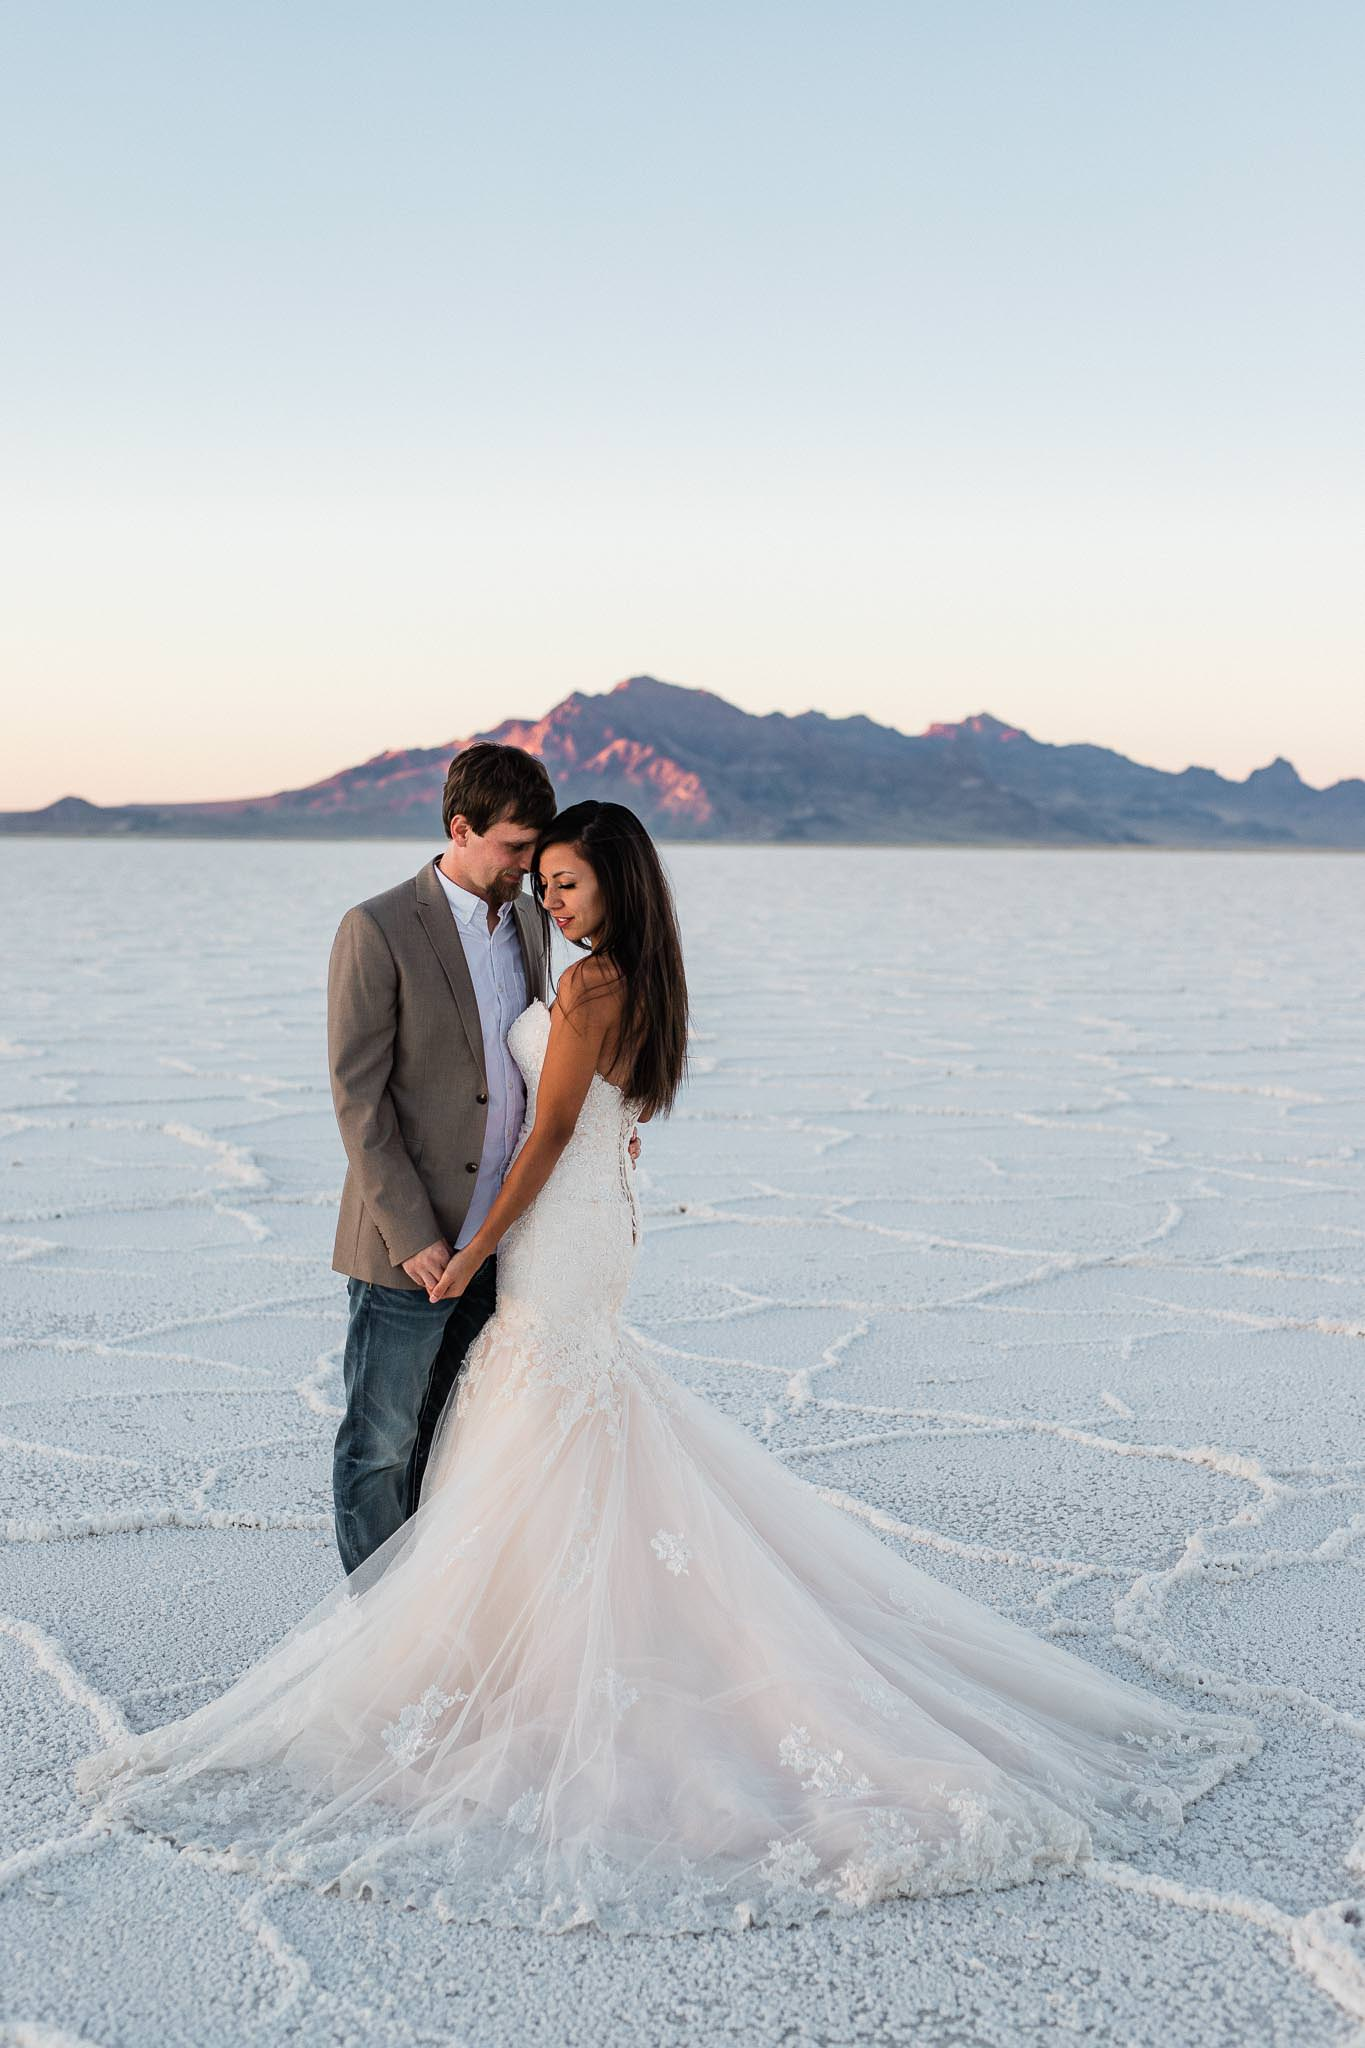 Intimate wedding couple portrait on Bonneville Salt Flats in Utah with alpenglow on mountains in the background